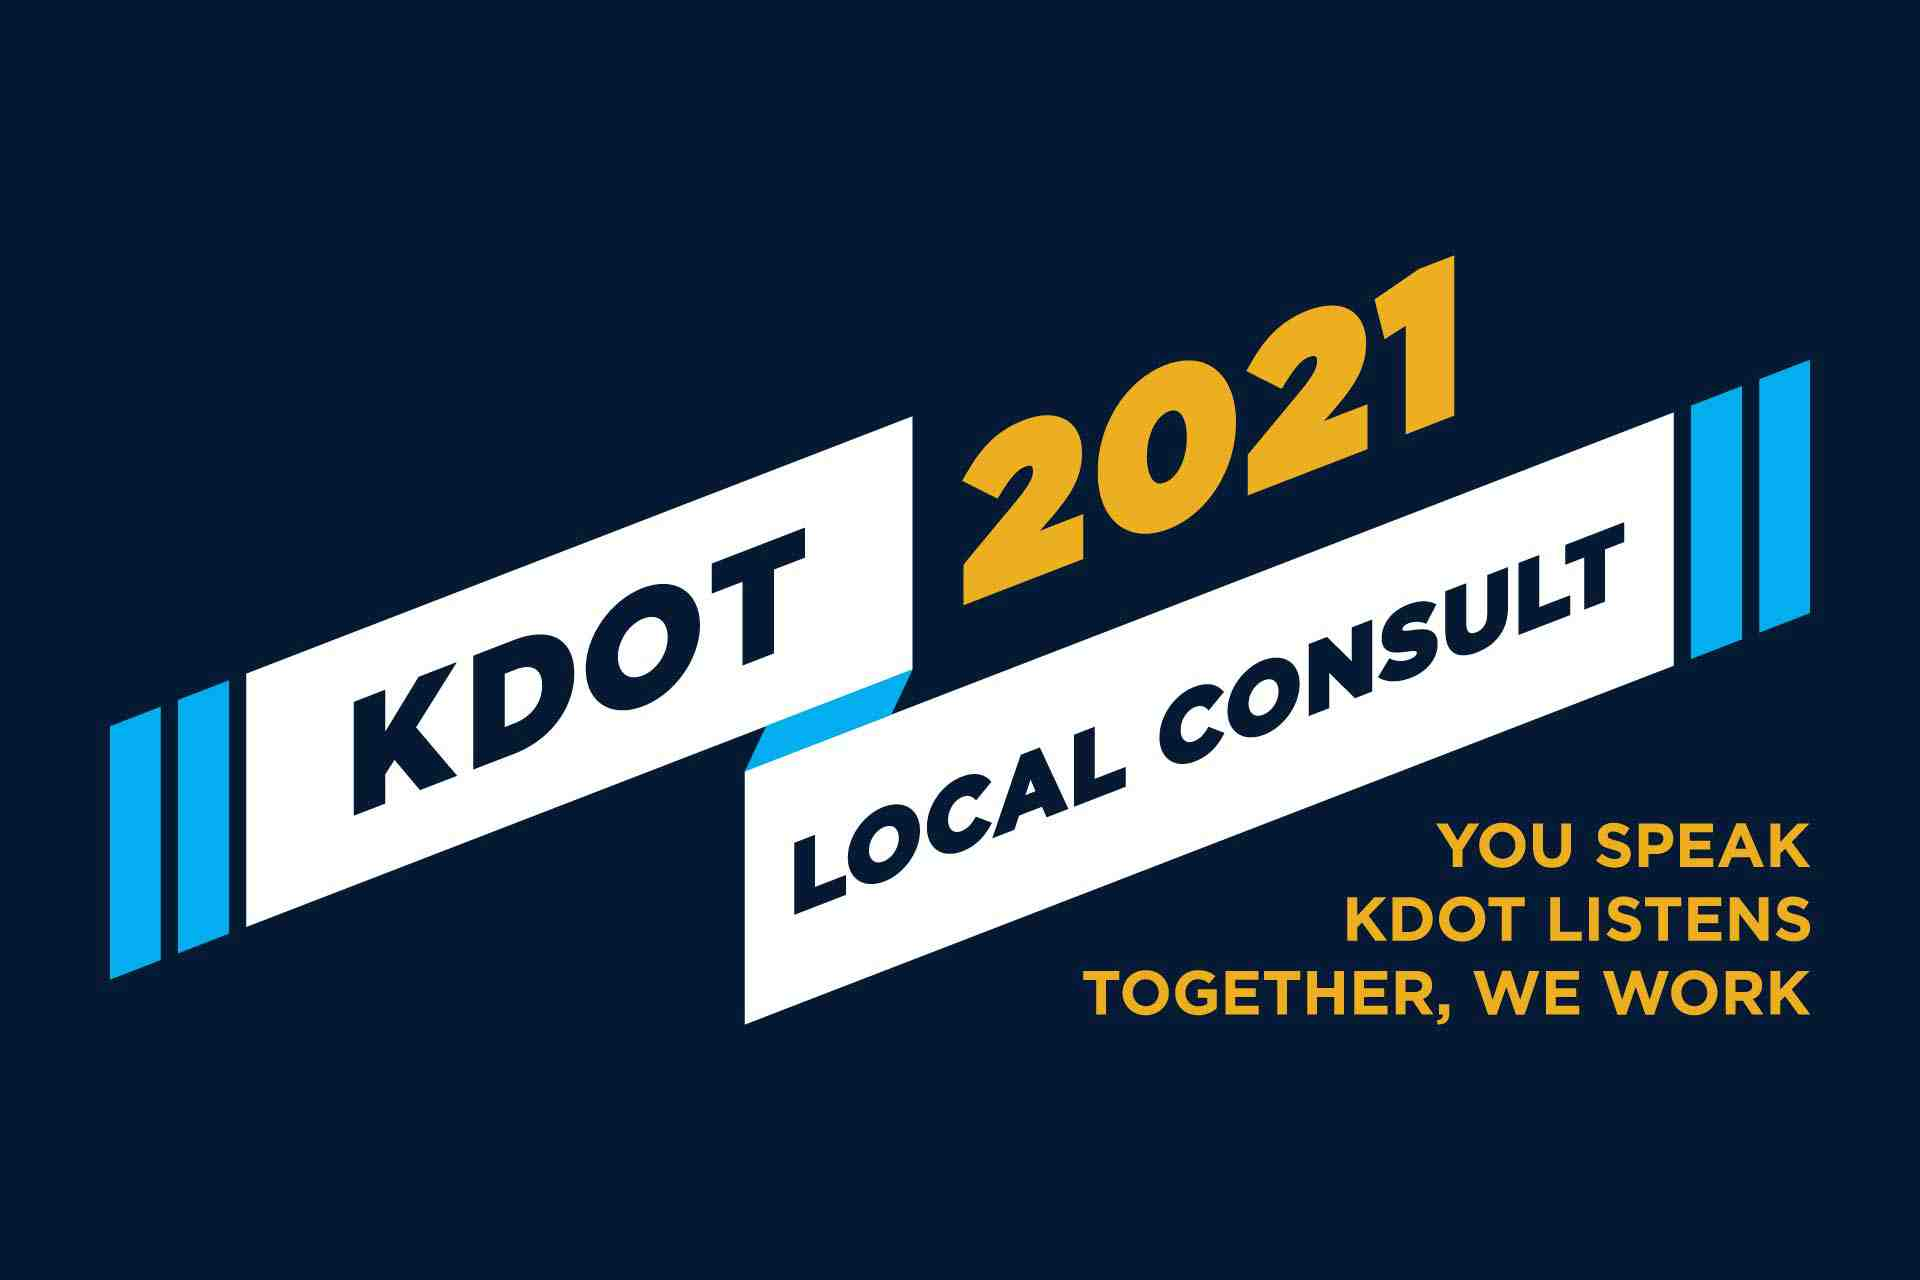 KDOT wants to hear from you at upcoming Local Consult meetings.